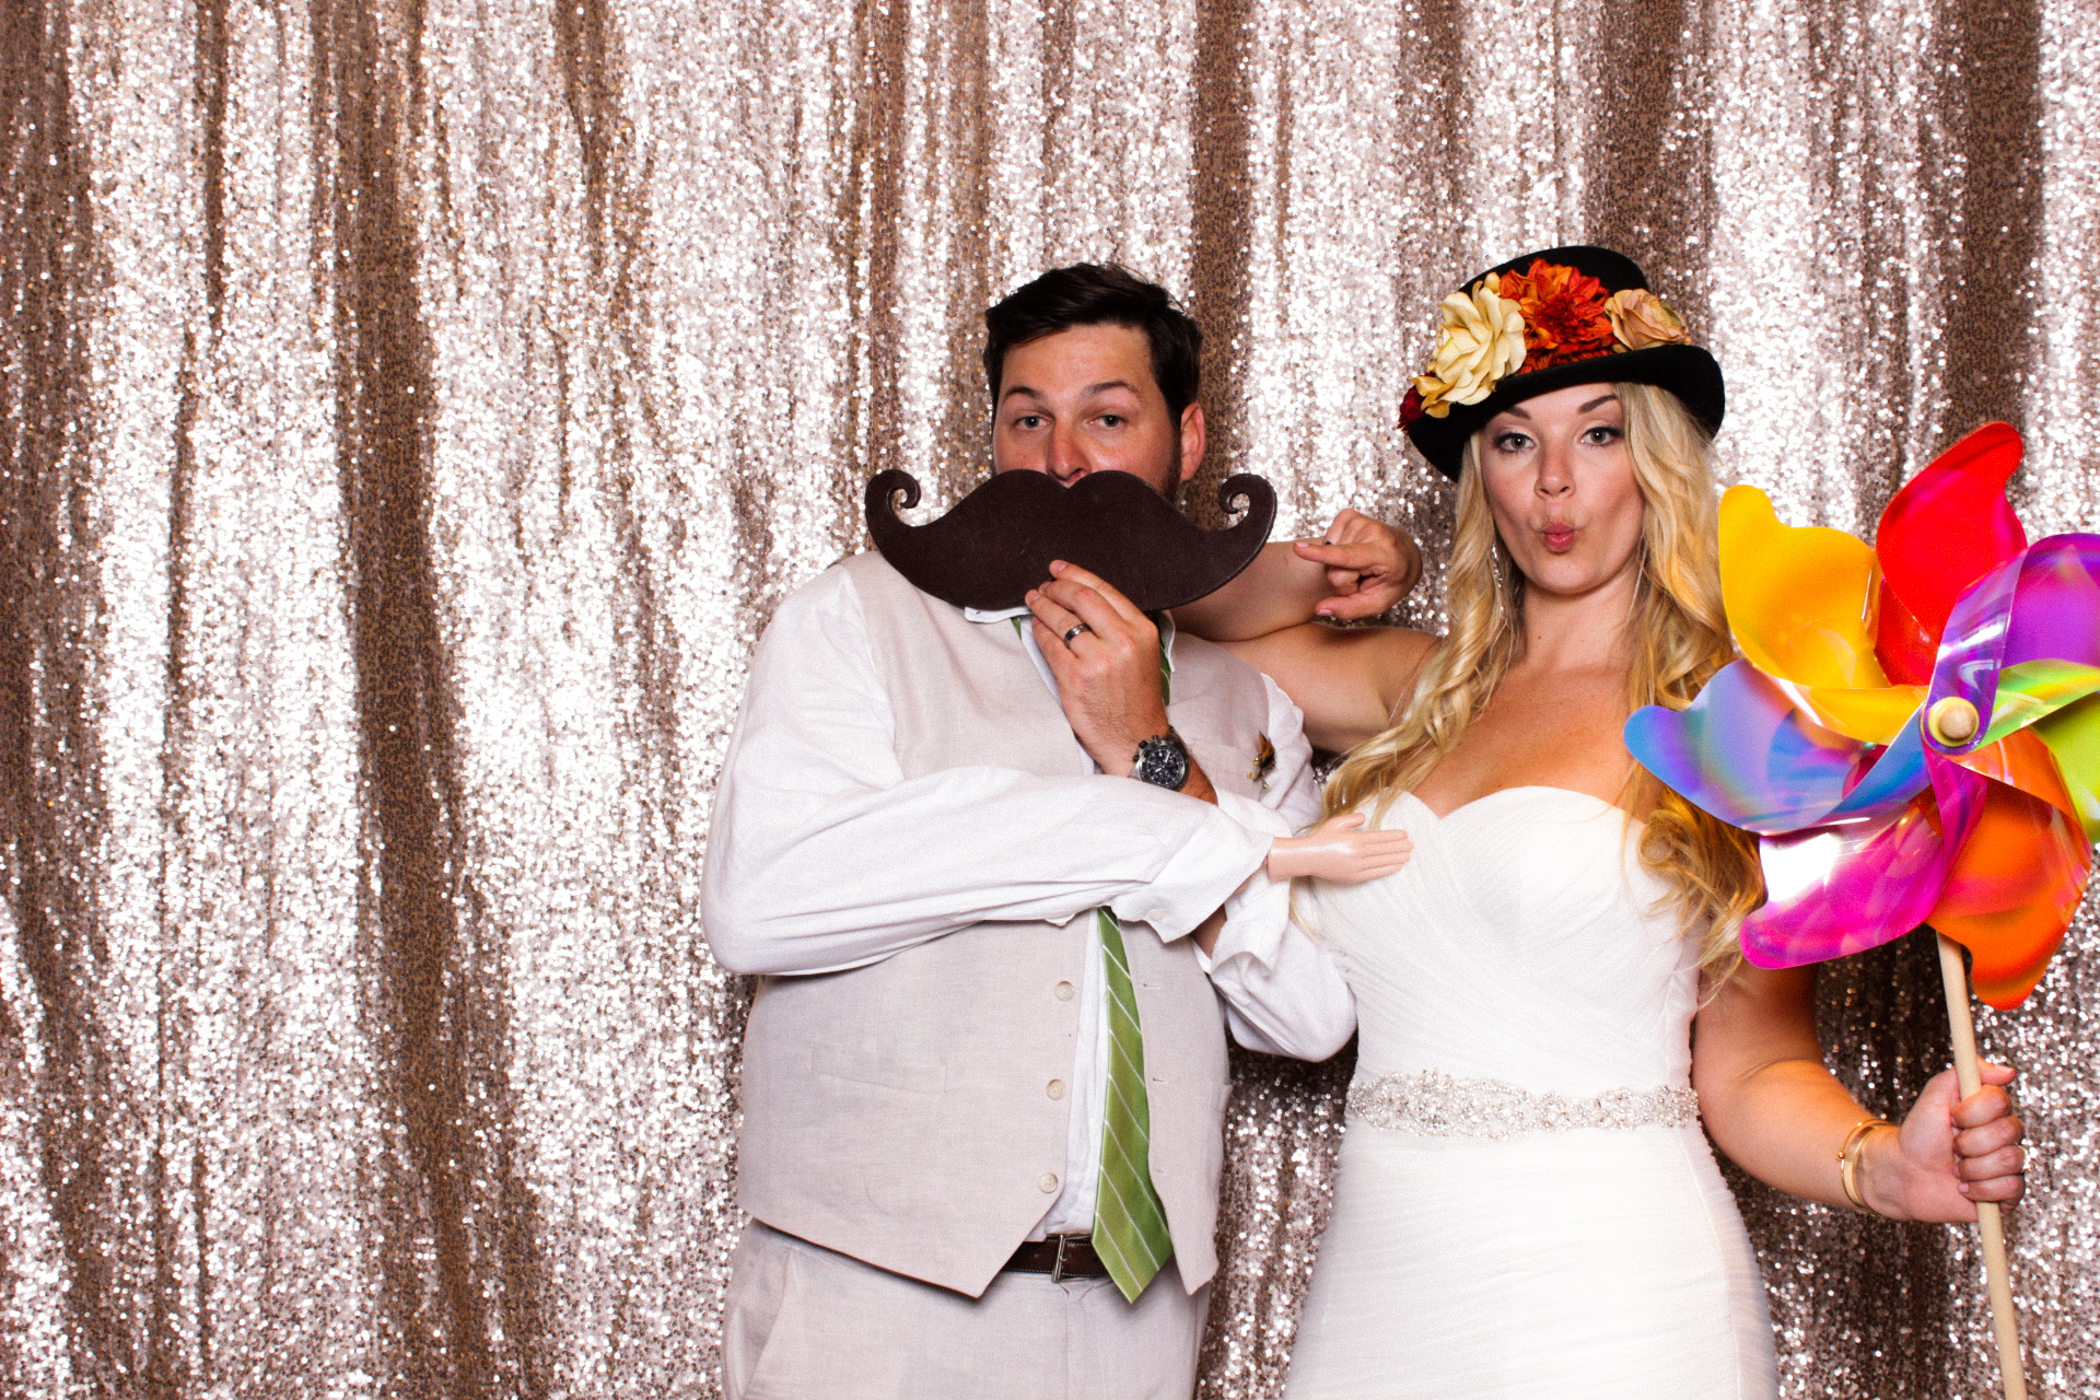 The_Reverie_Booth-Boca_Raton_Photobooth-Wedding_Photobooth_Florida-Florida_Photobooth_Rental-Wedding_Photobooth-077.jpg